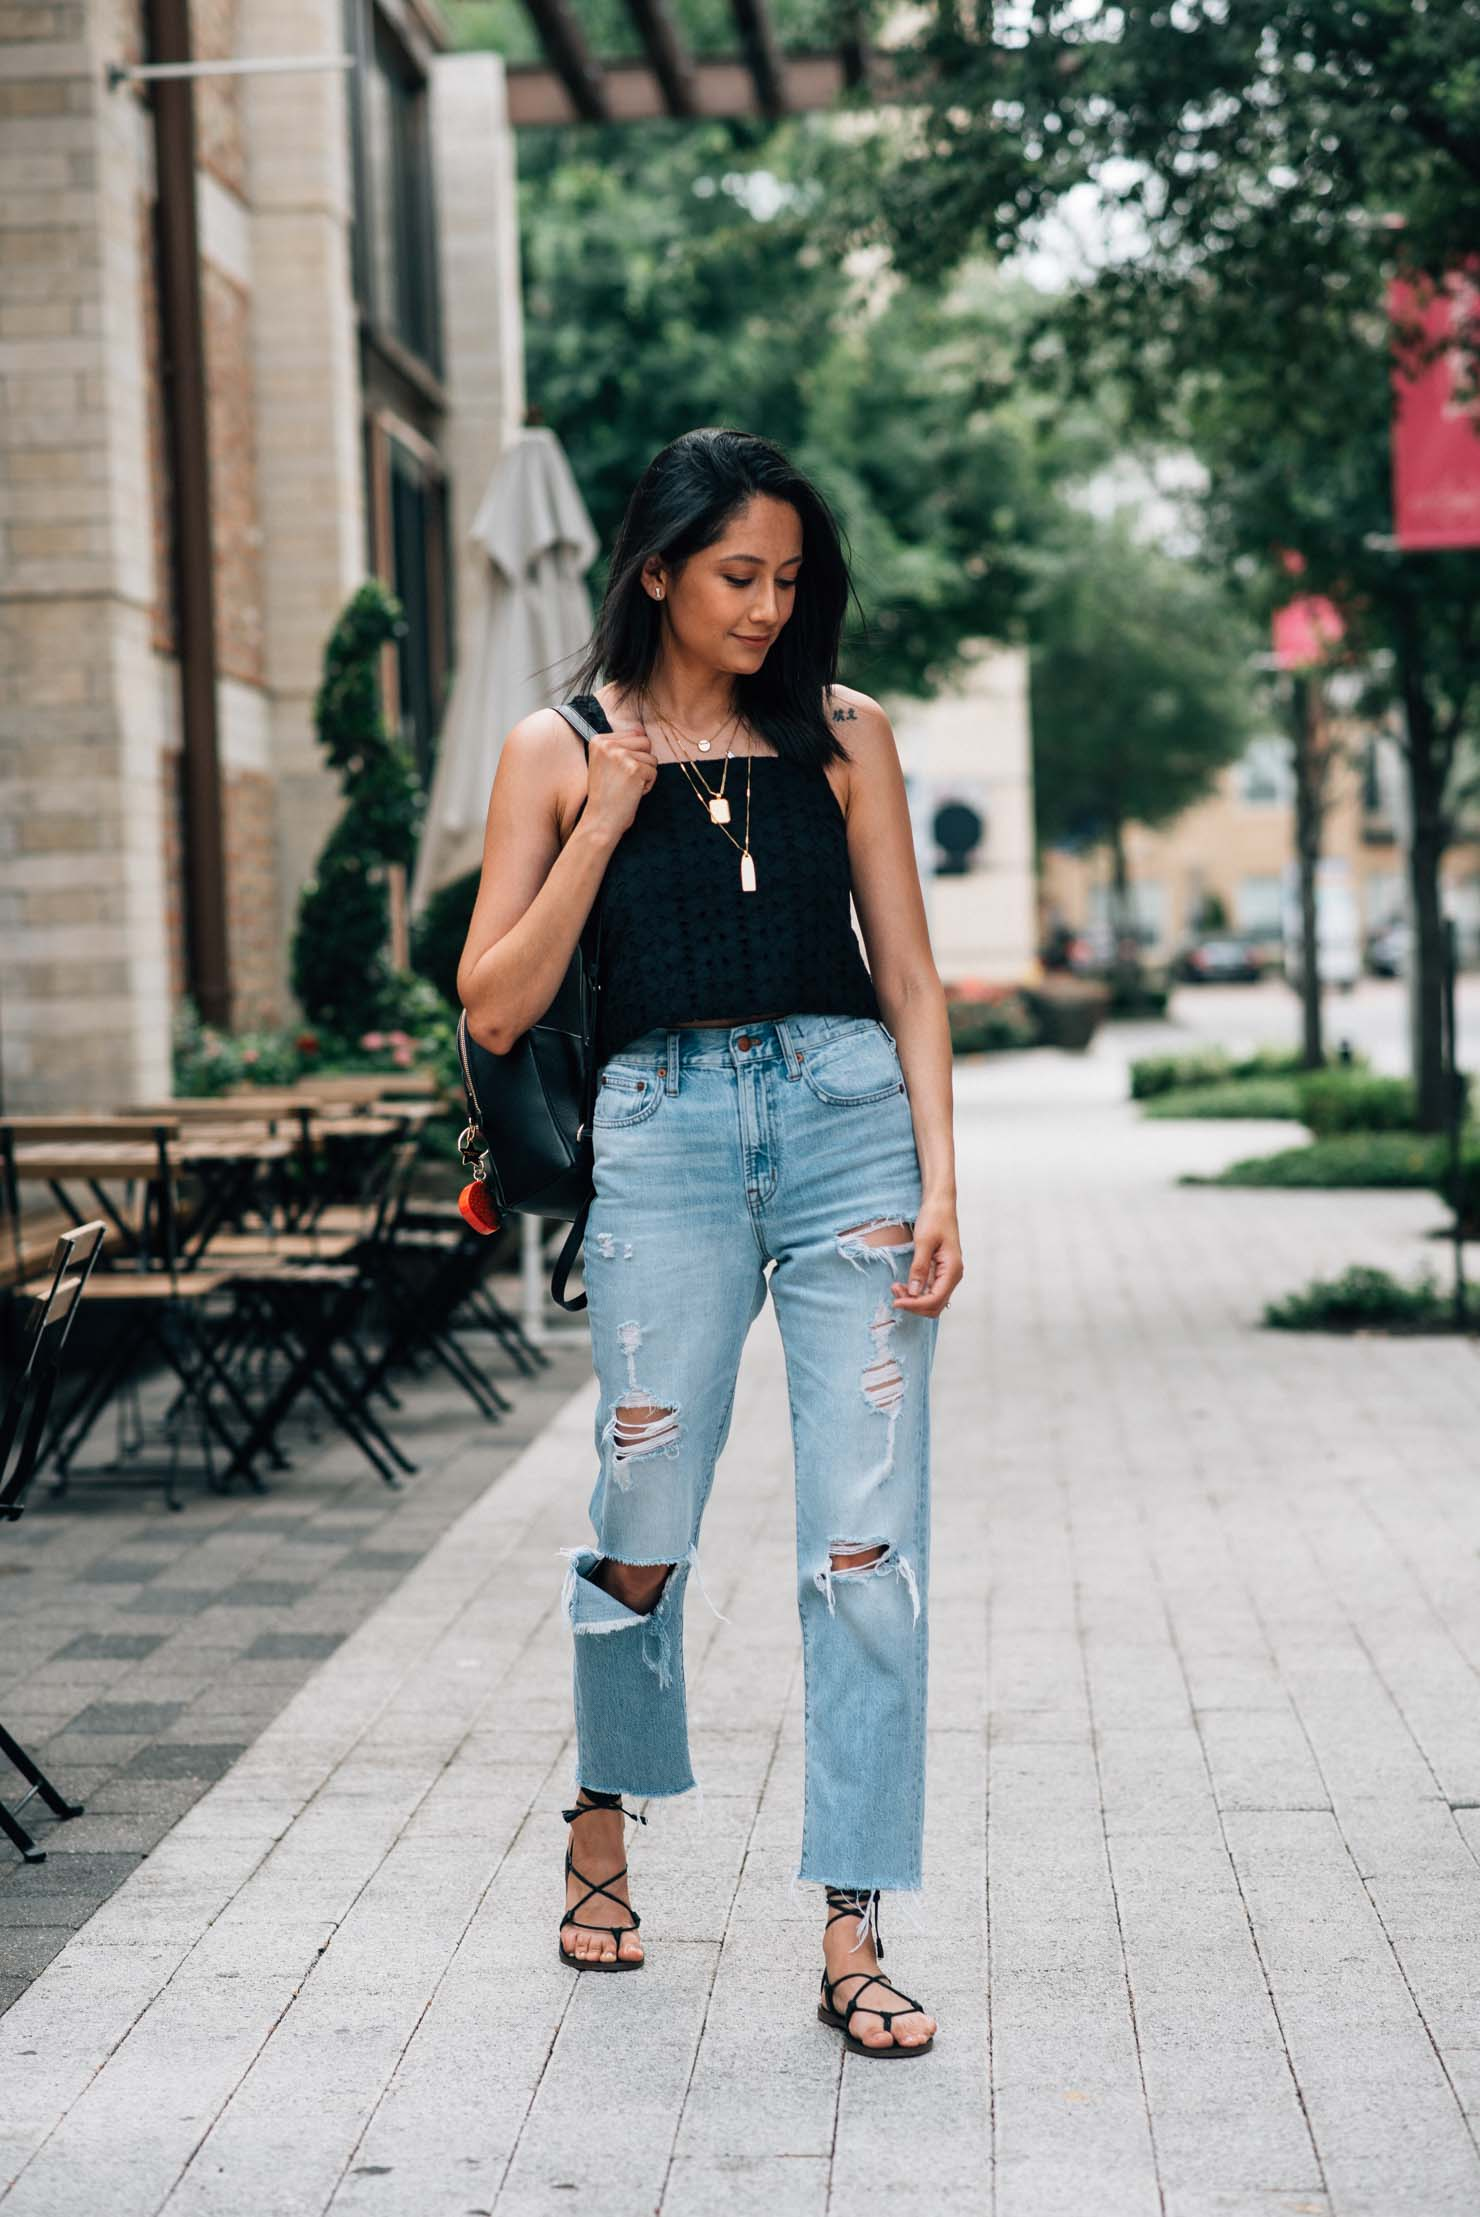 Eyelet crop top | Ripped jeans | Layered necklace | Lilly Beltran, fashion blogger | Street Style